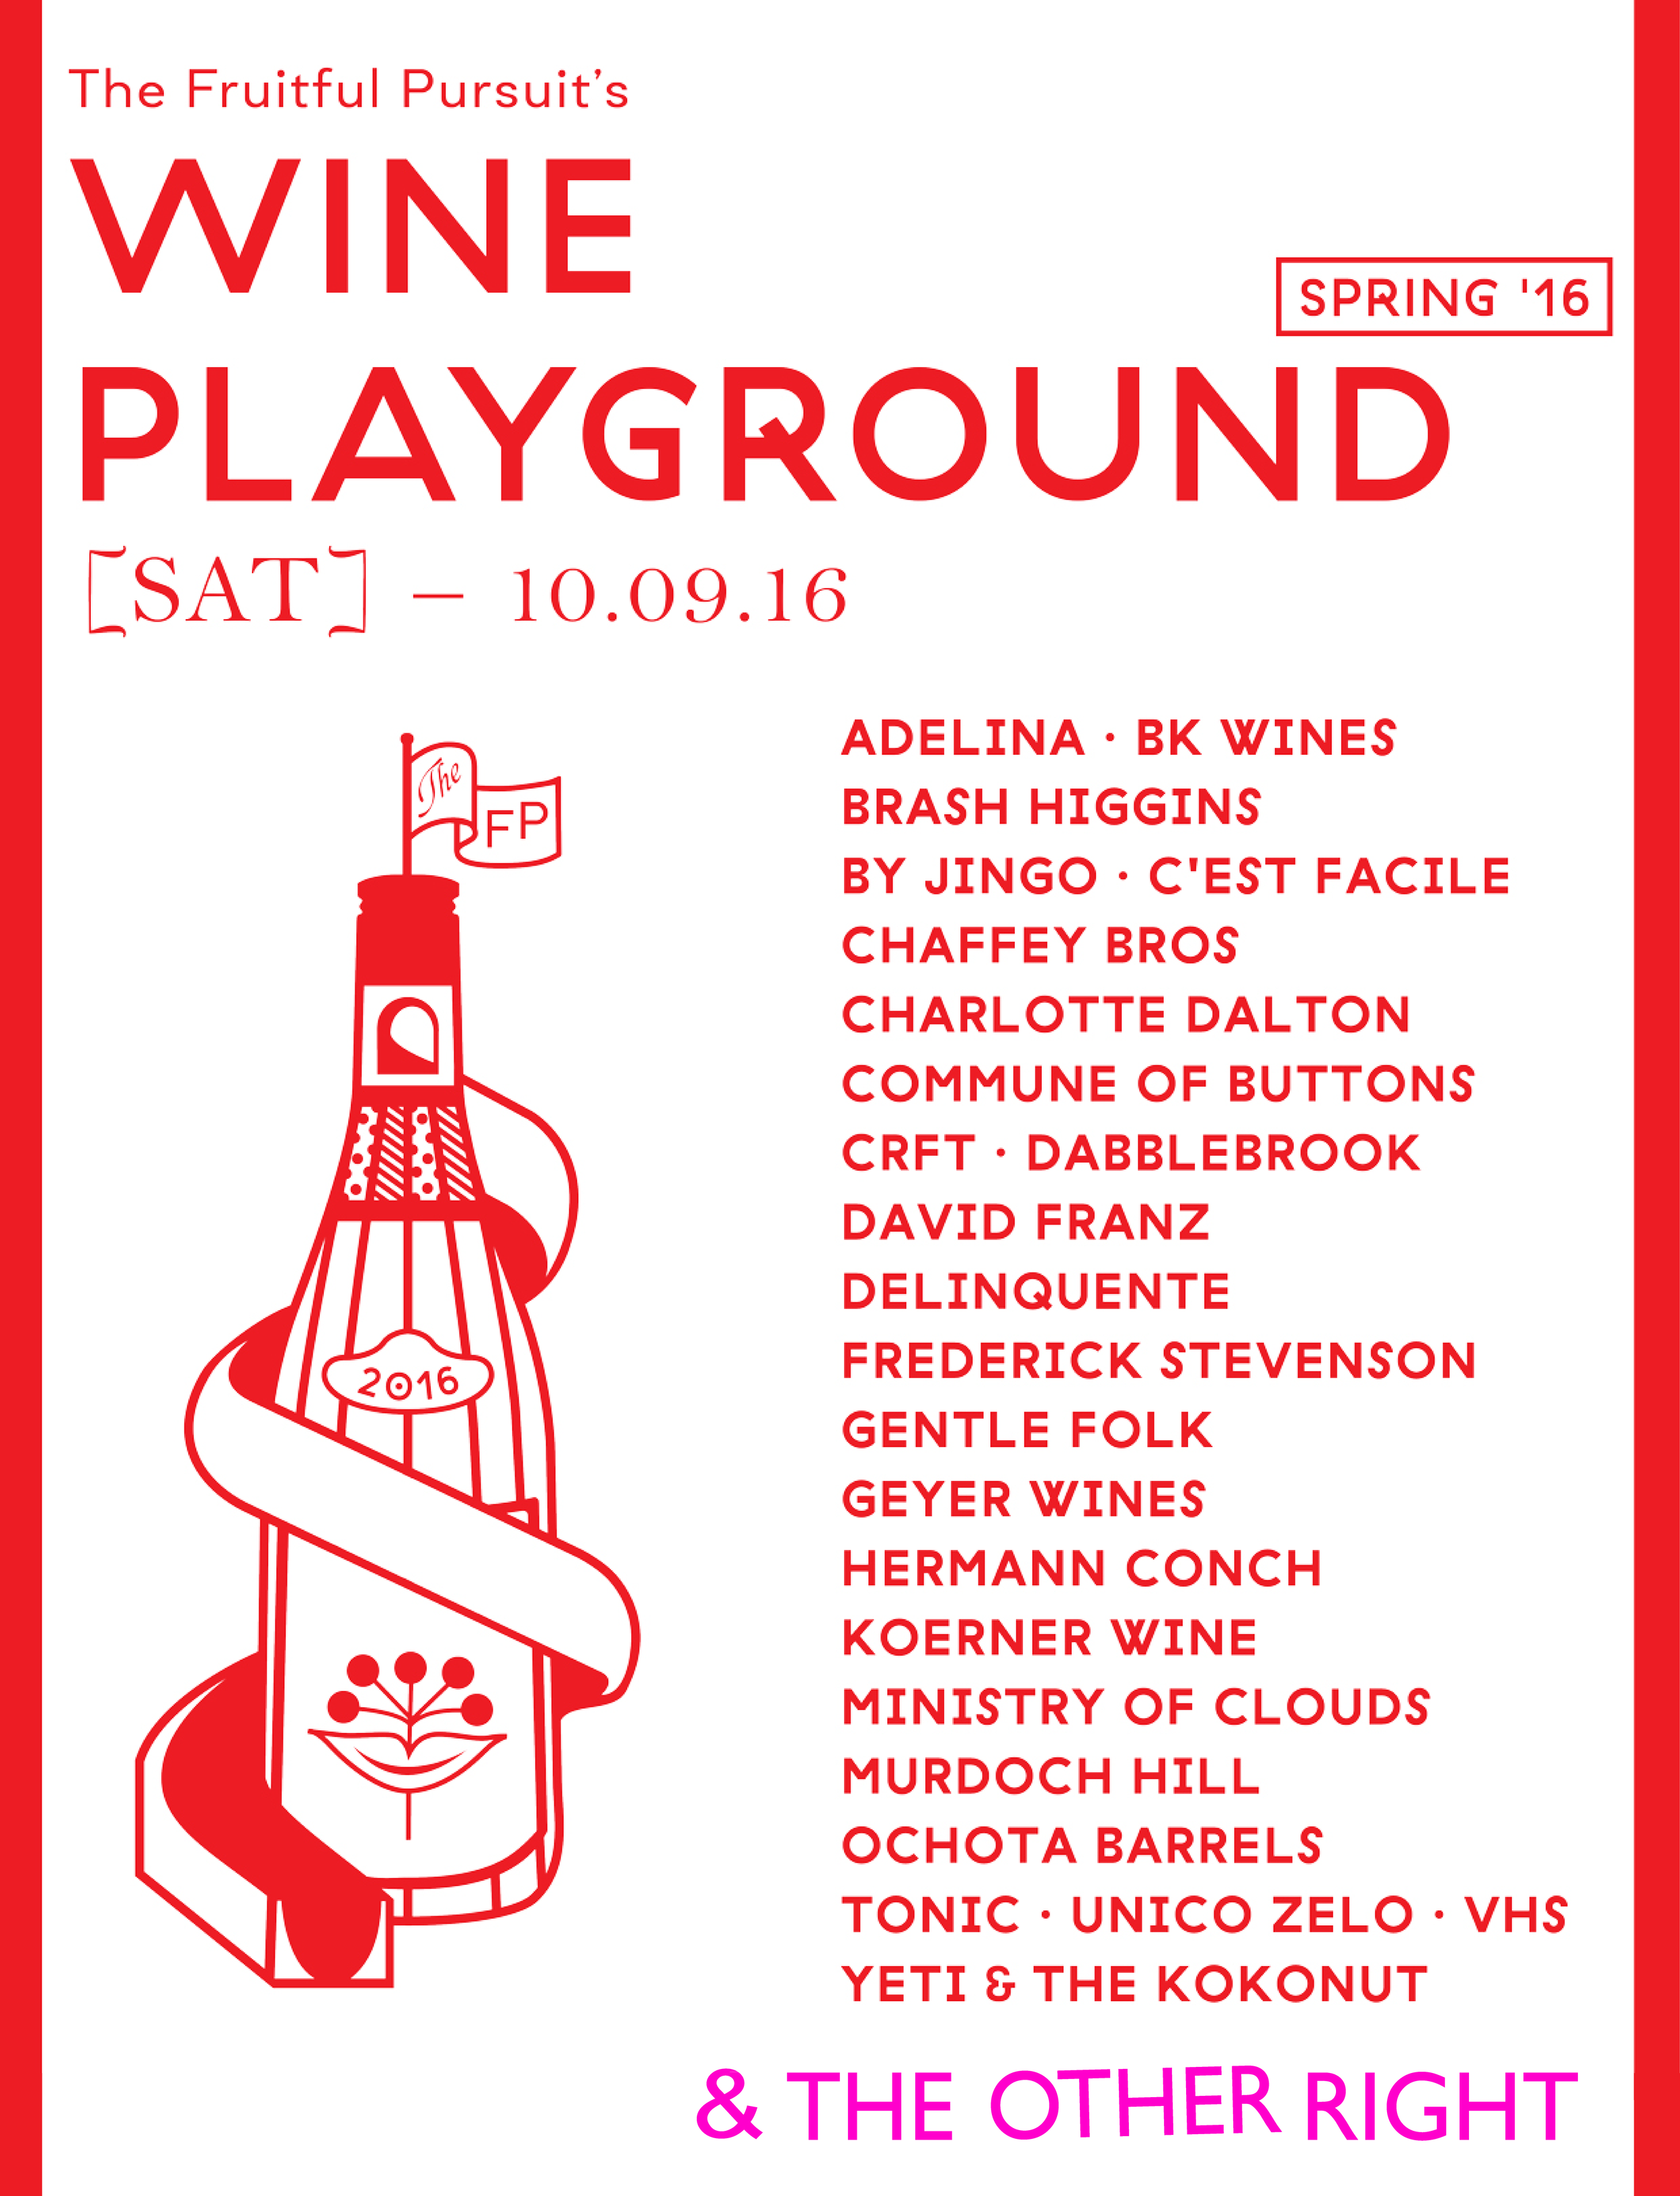 Win Playground - The Fruitful Pursuit x The Other Right